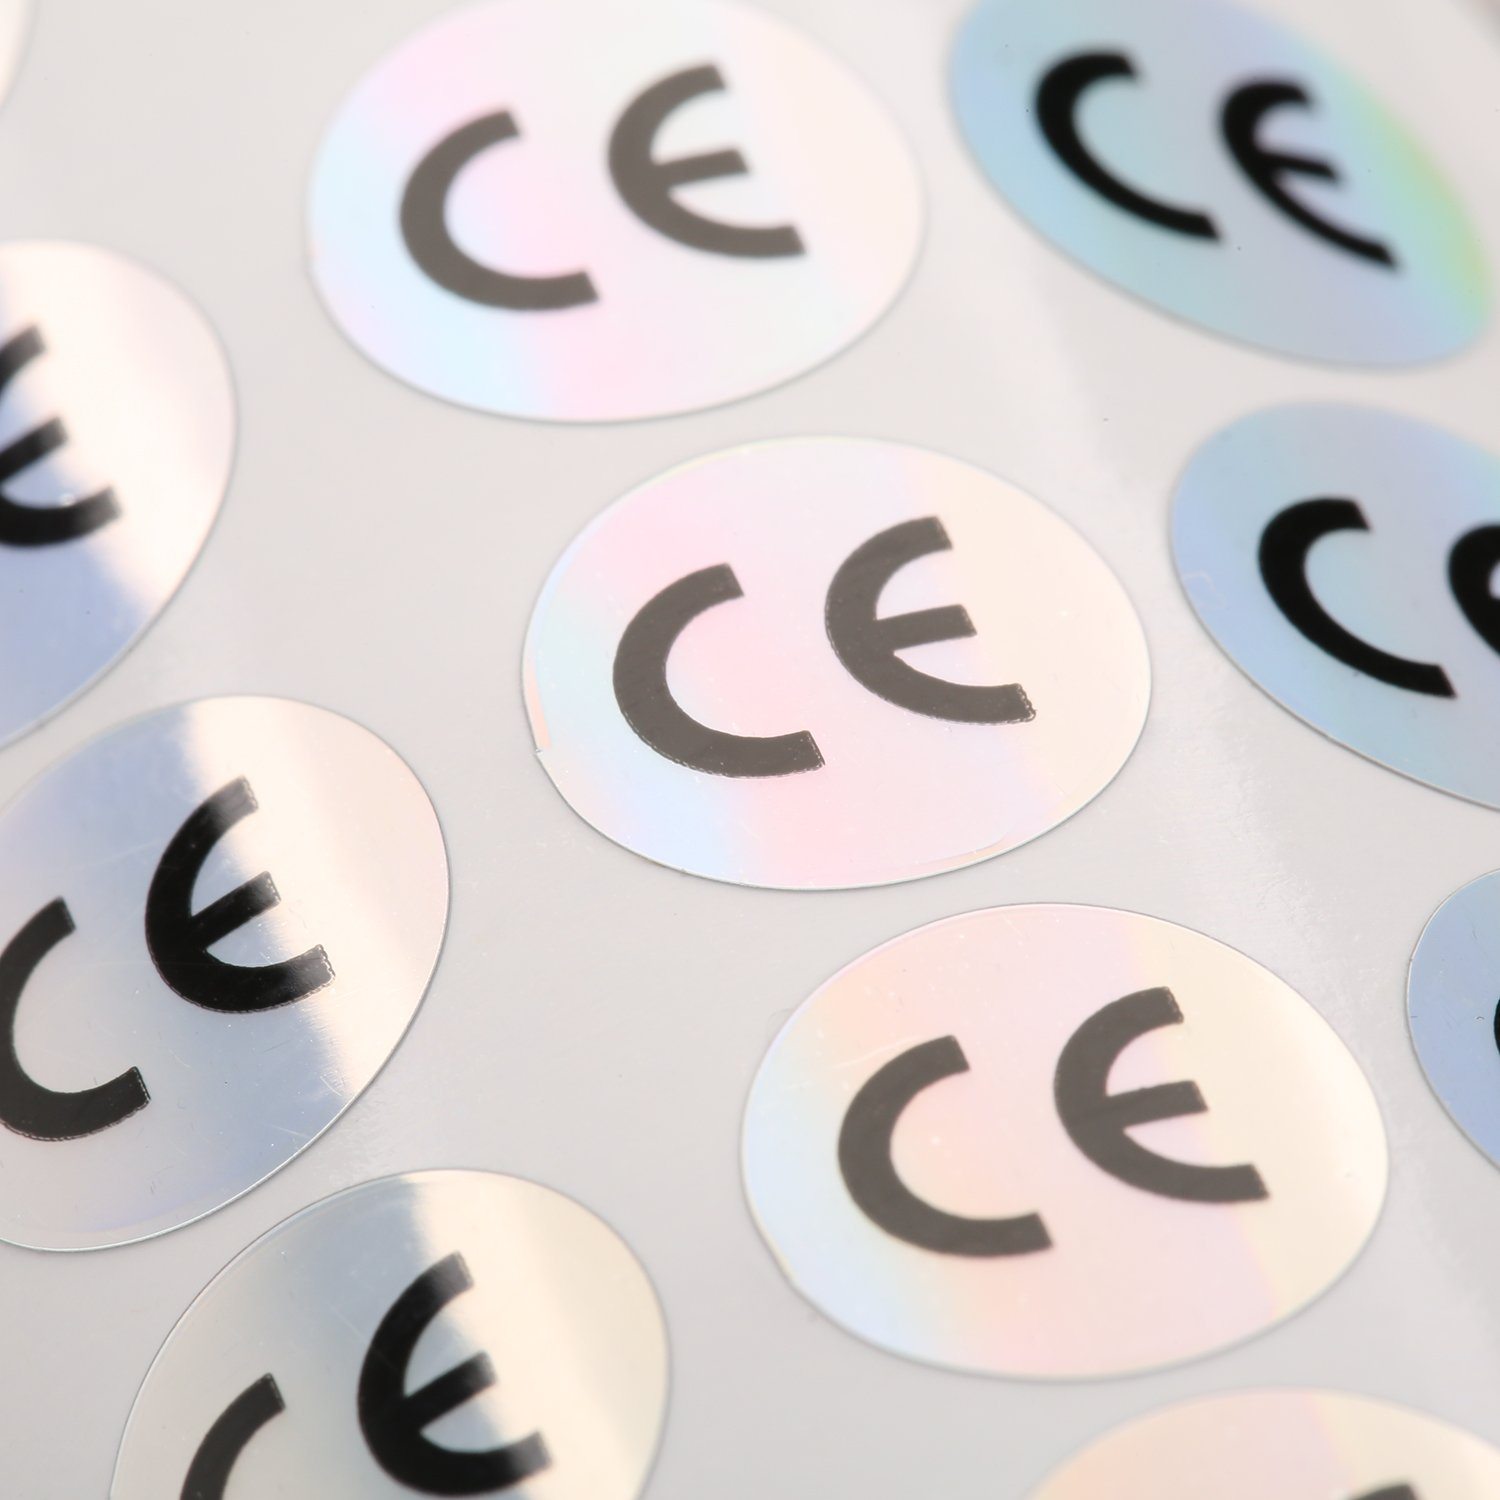 1000pcs hologram CE stickers round shape diameter 1CM/0.4'' adhesive sticker by justlabel